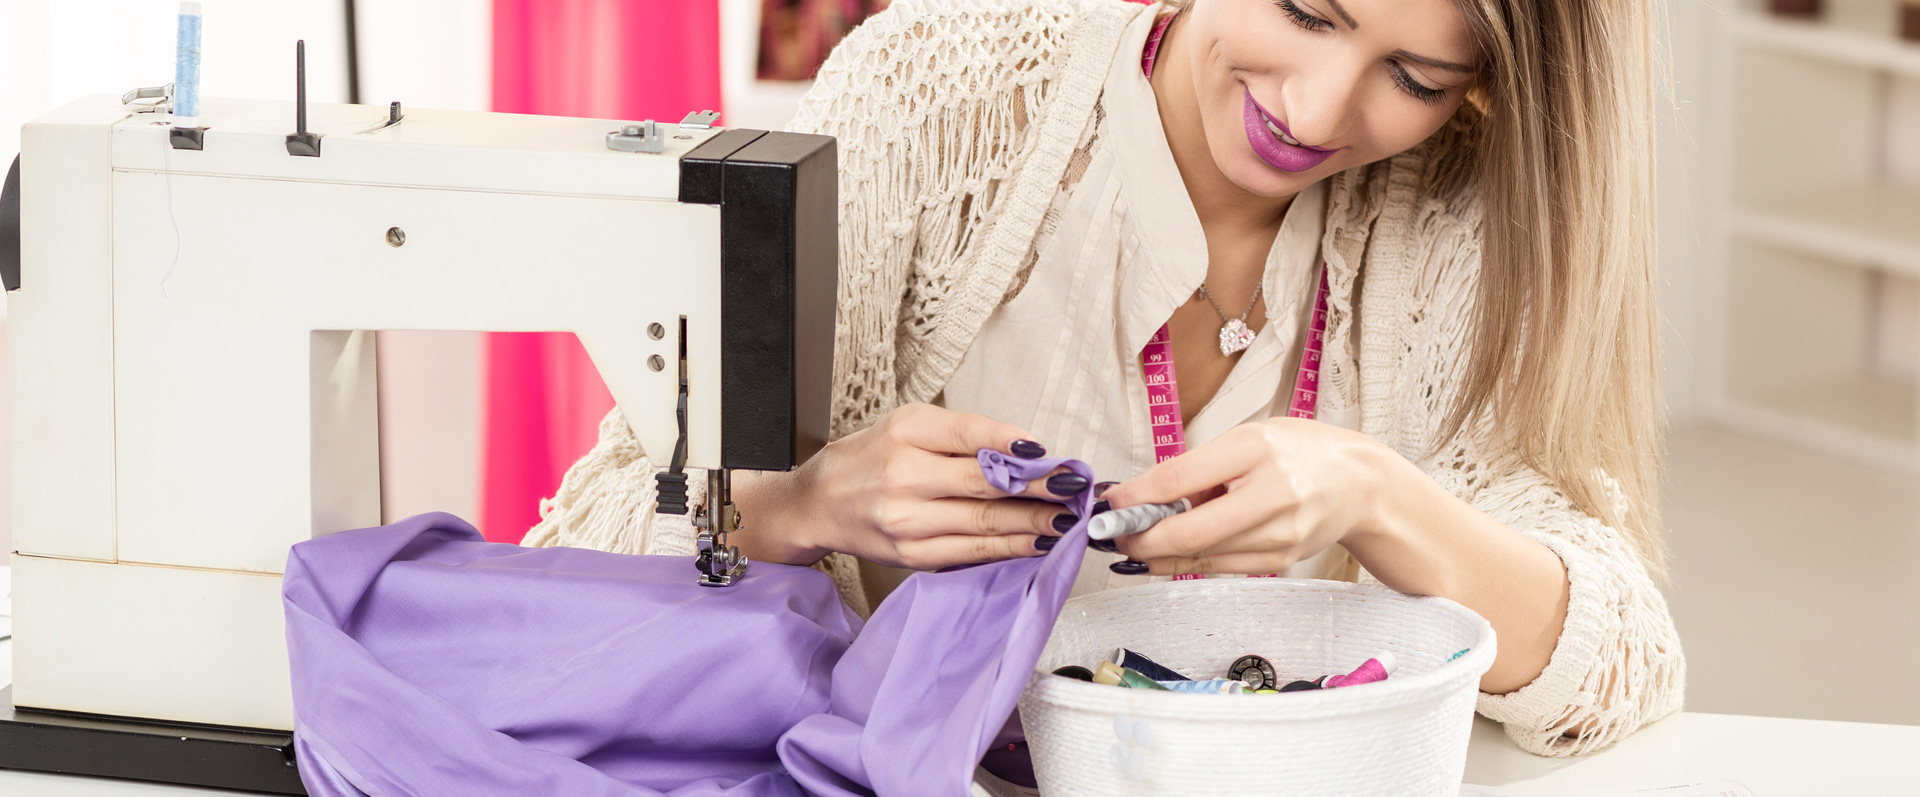 The Right Machine to Sew or Clean